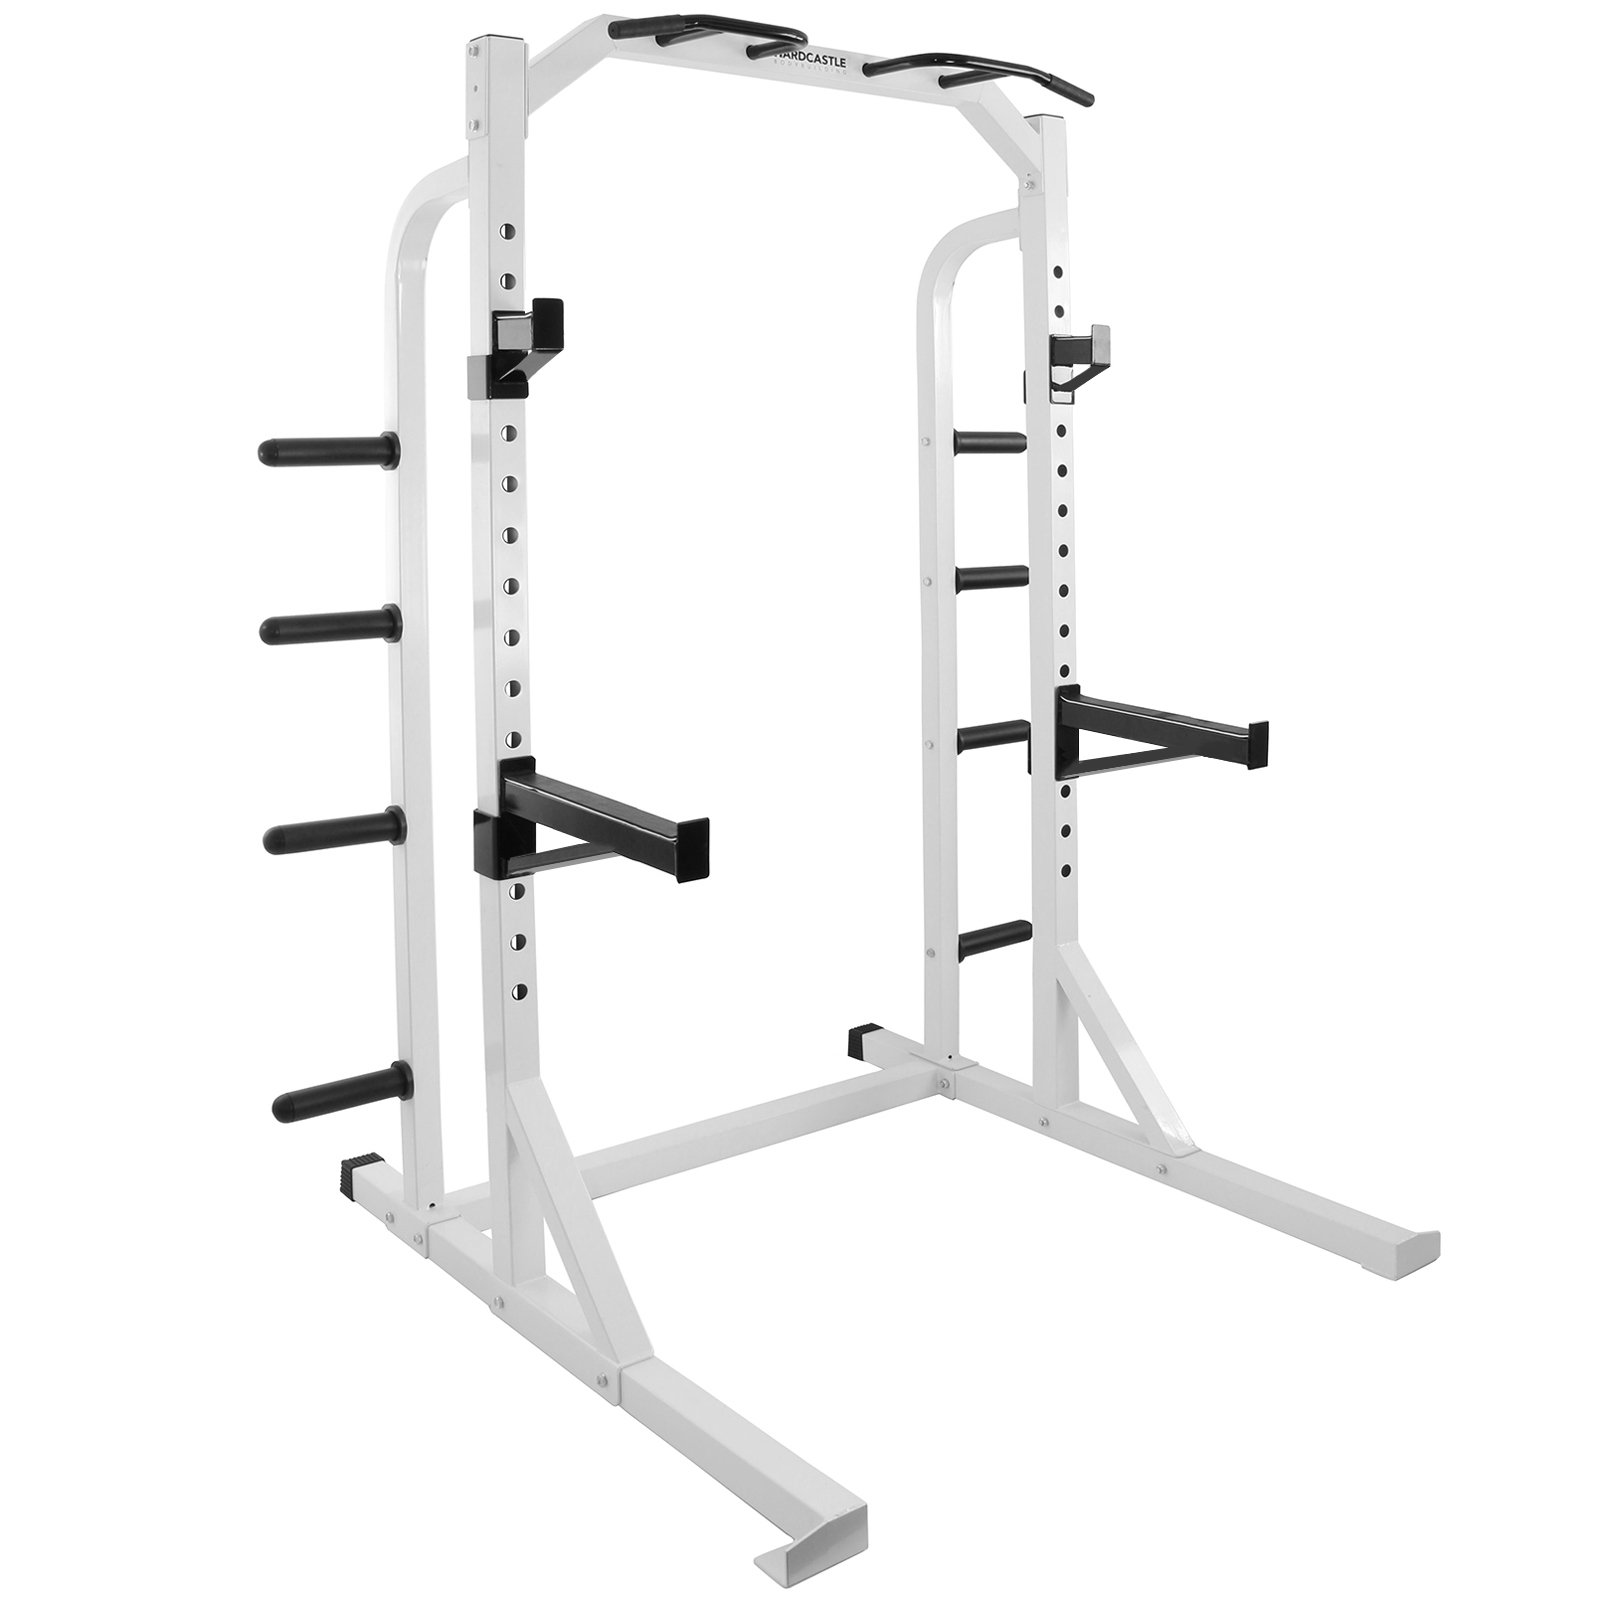 Hd White Olympic Power Cage Squat Weight Rack Home Multi Gym Pull